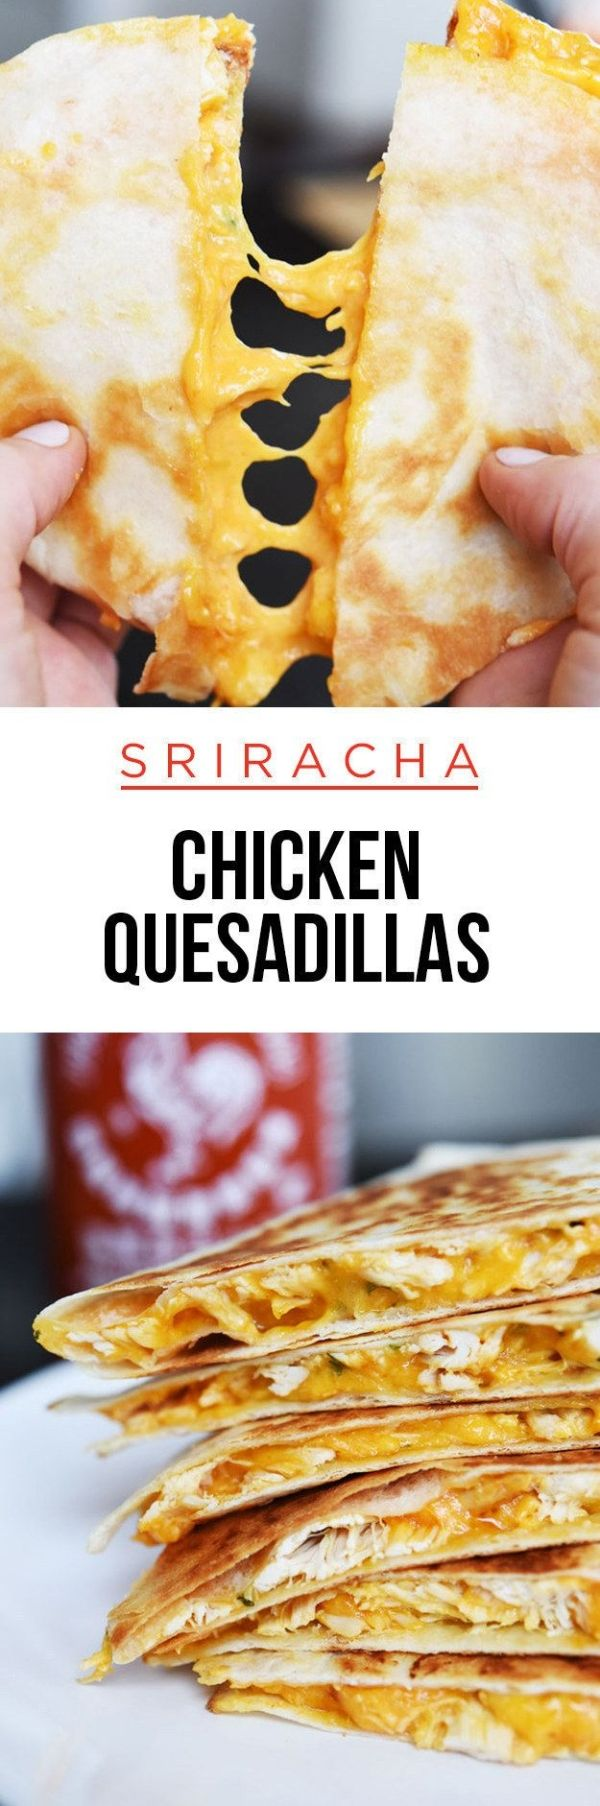 Sriracha Chicken Quesadillas by lucinda